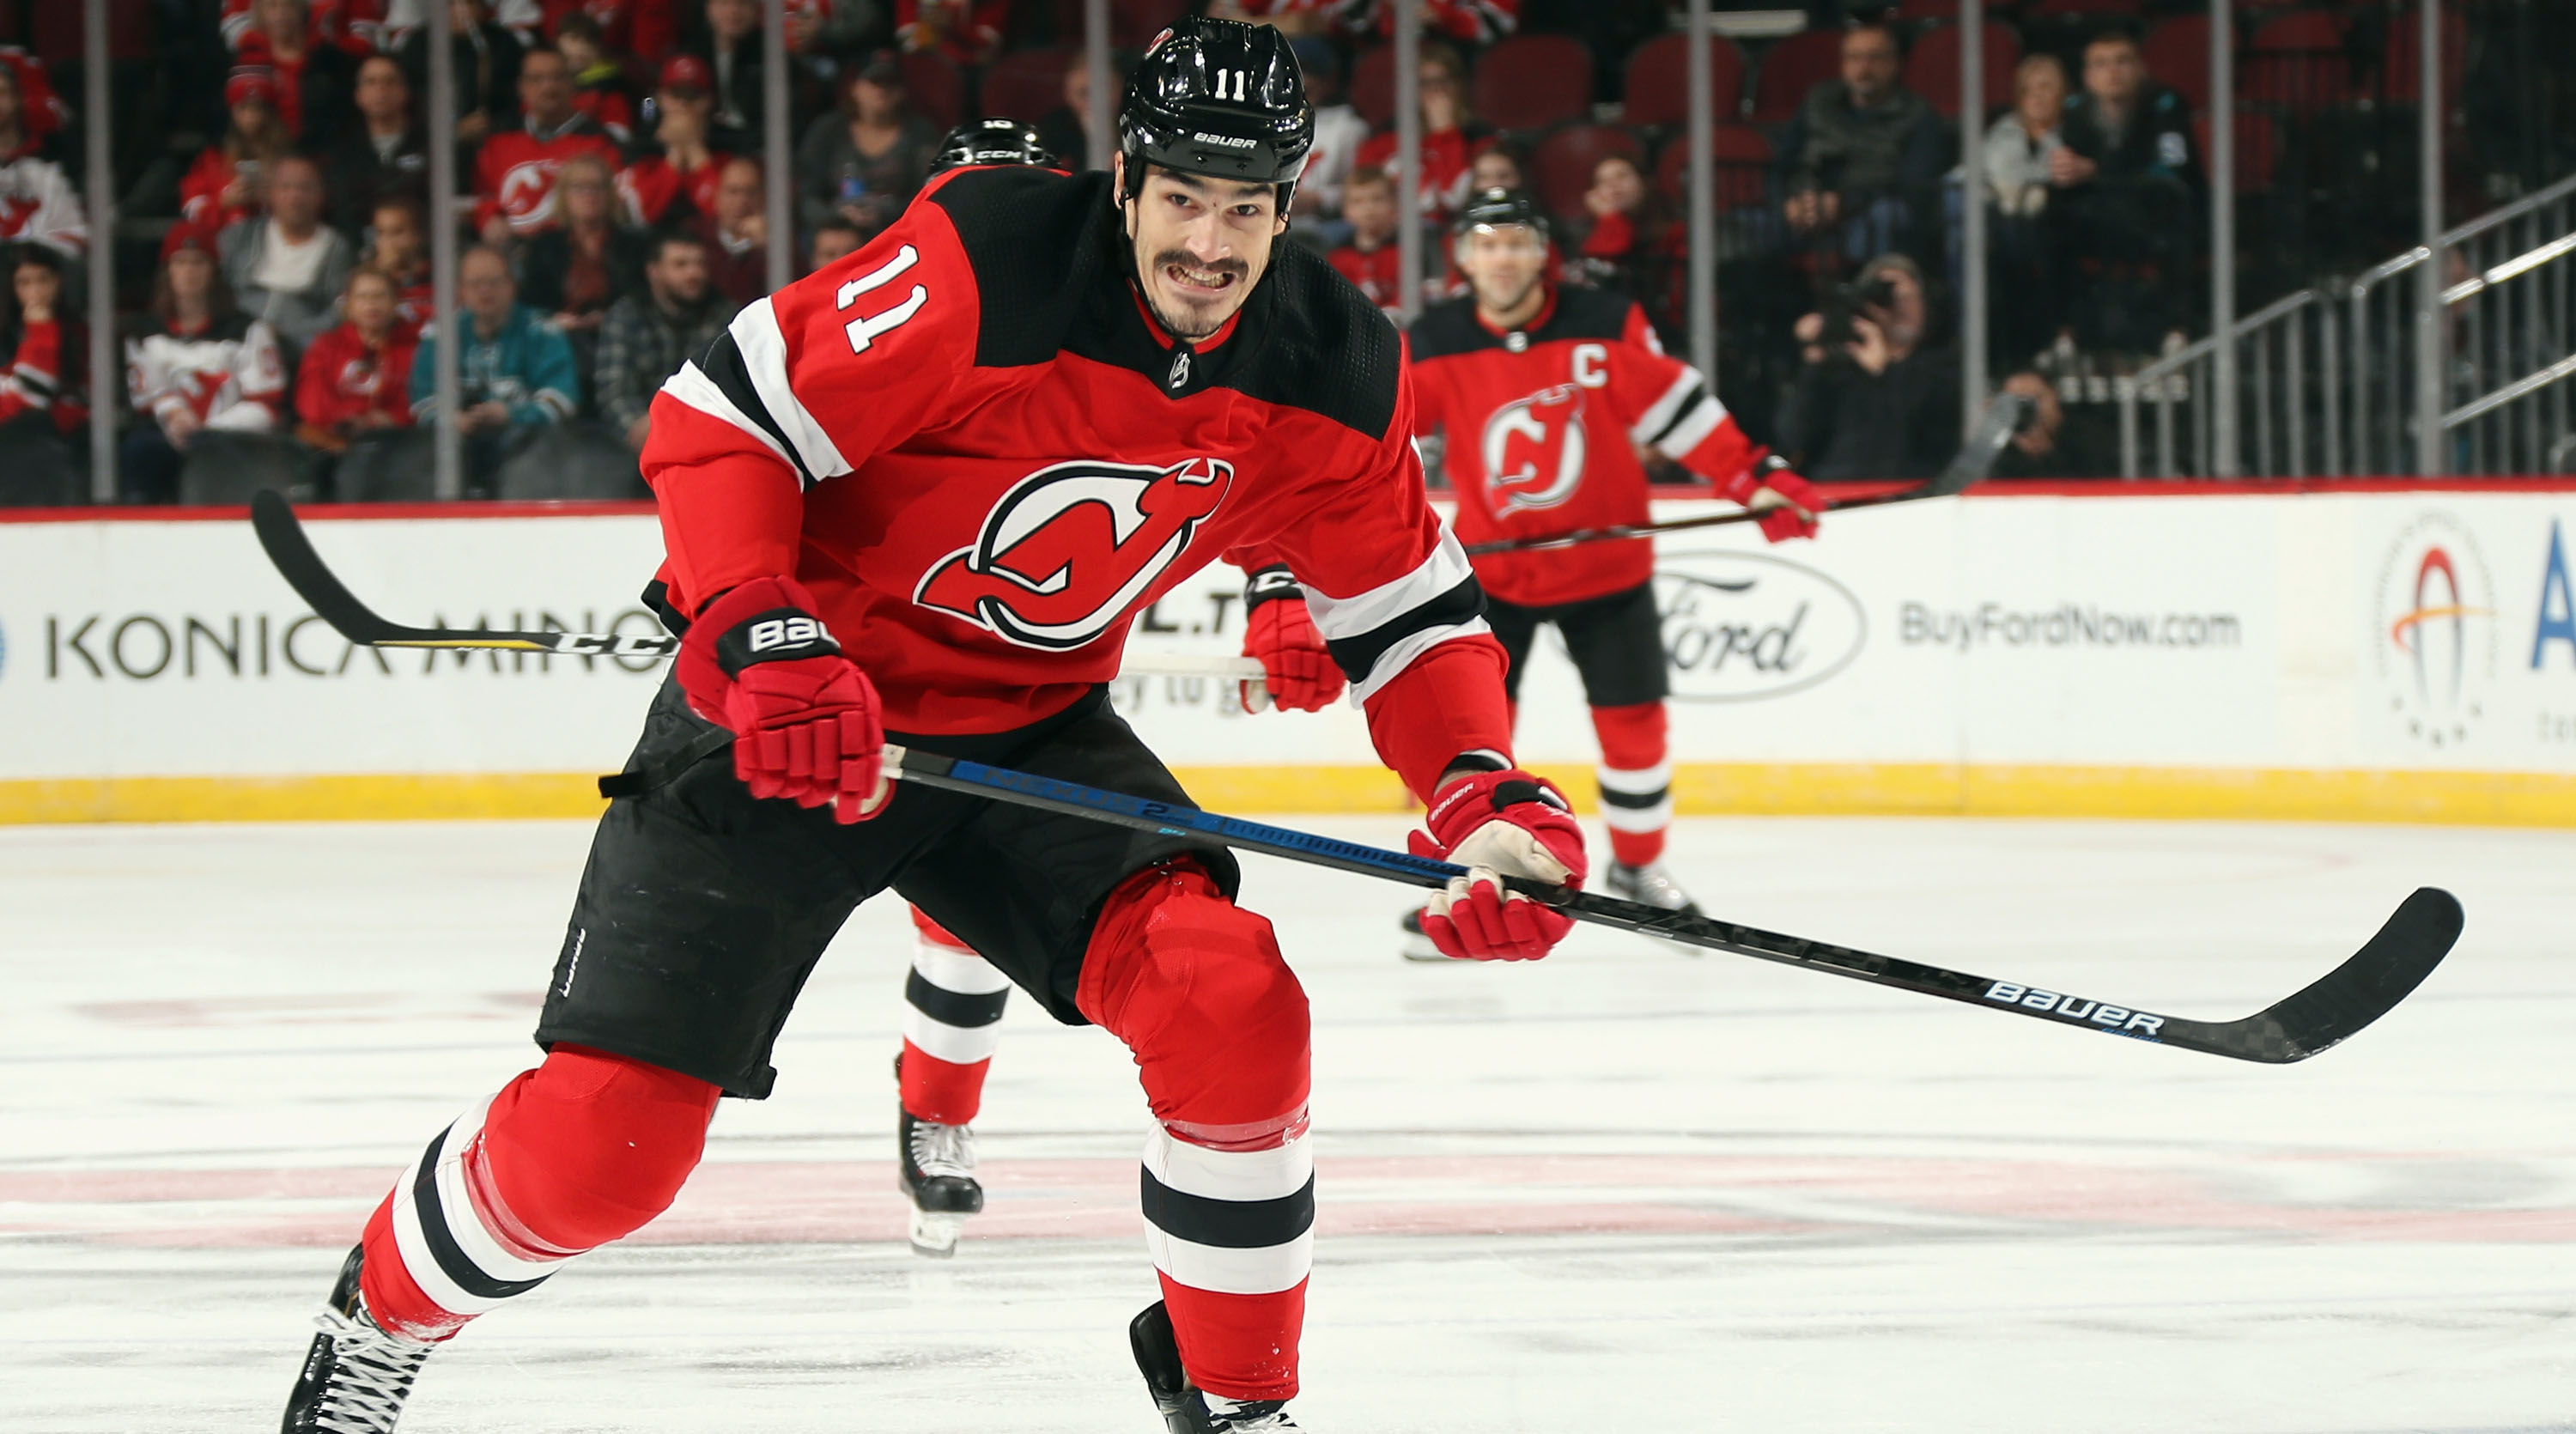 reputable site 04304 ebe25 Devils' Brian Boyle says cancer is in remission | SI.com